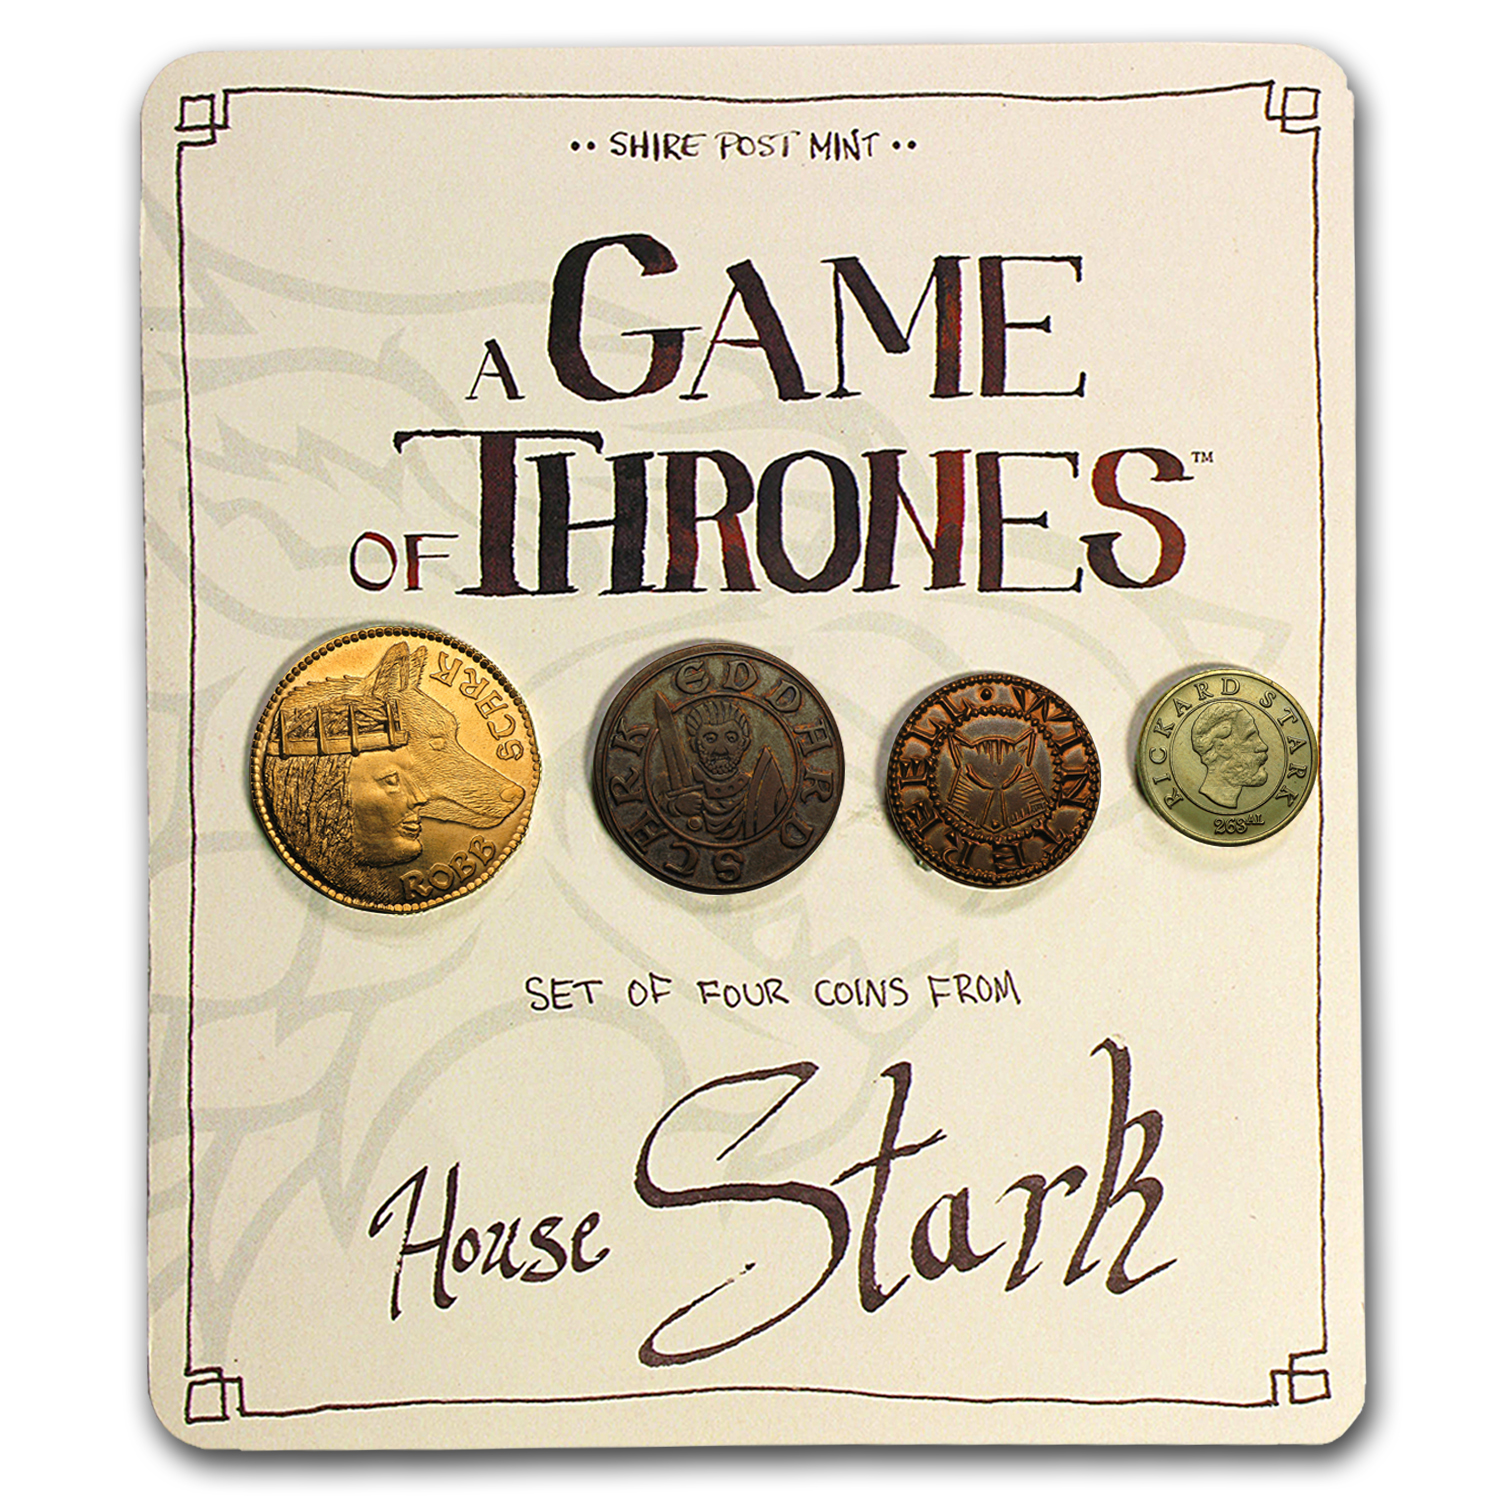 A Game Of Thrones - House Stark Set of 4 Coins